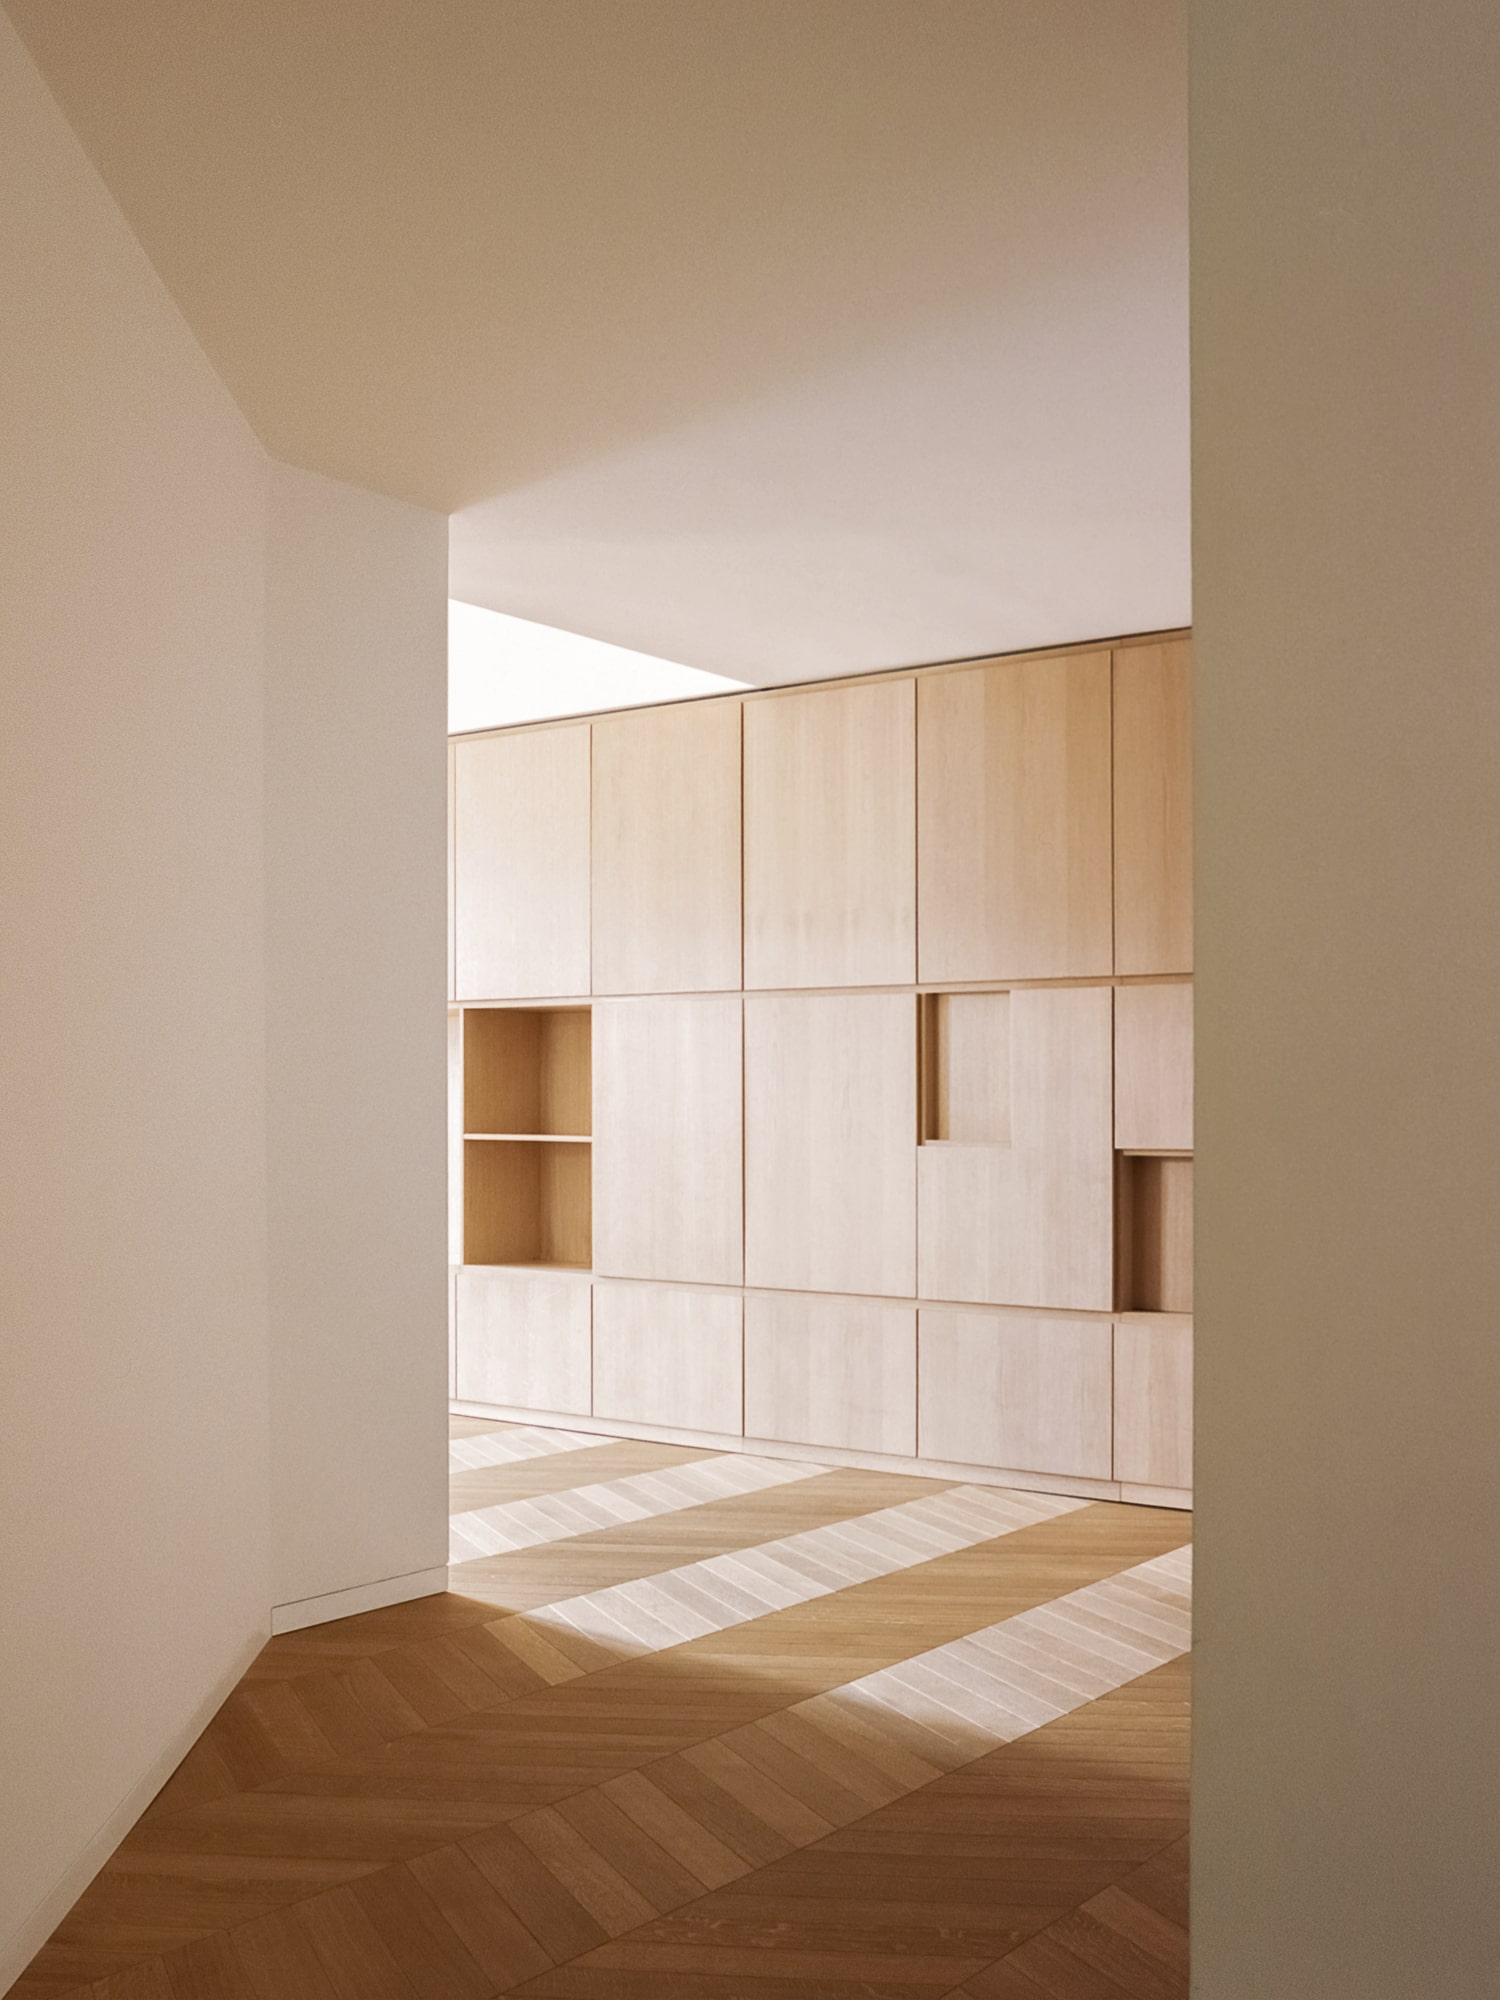 05 House For a Couple Simone Bossi SET Architects min